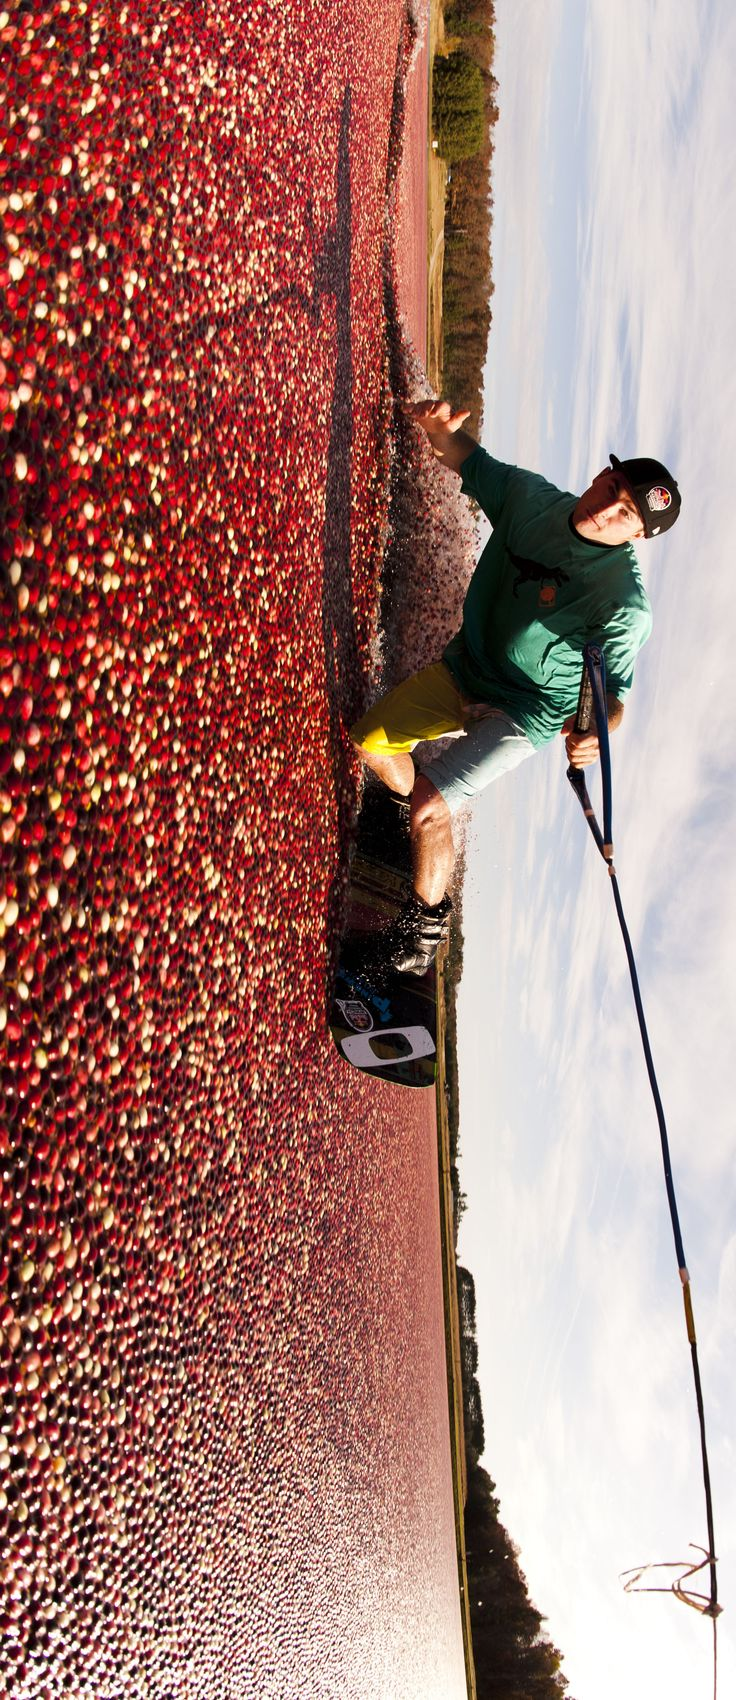 Okay, so I'm guilty of wanting to jump into the cranberry pool on the ocean spray commercials so I would probably do this if given a chance....